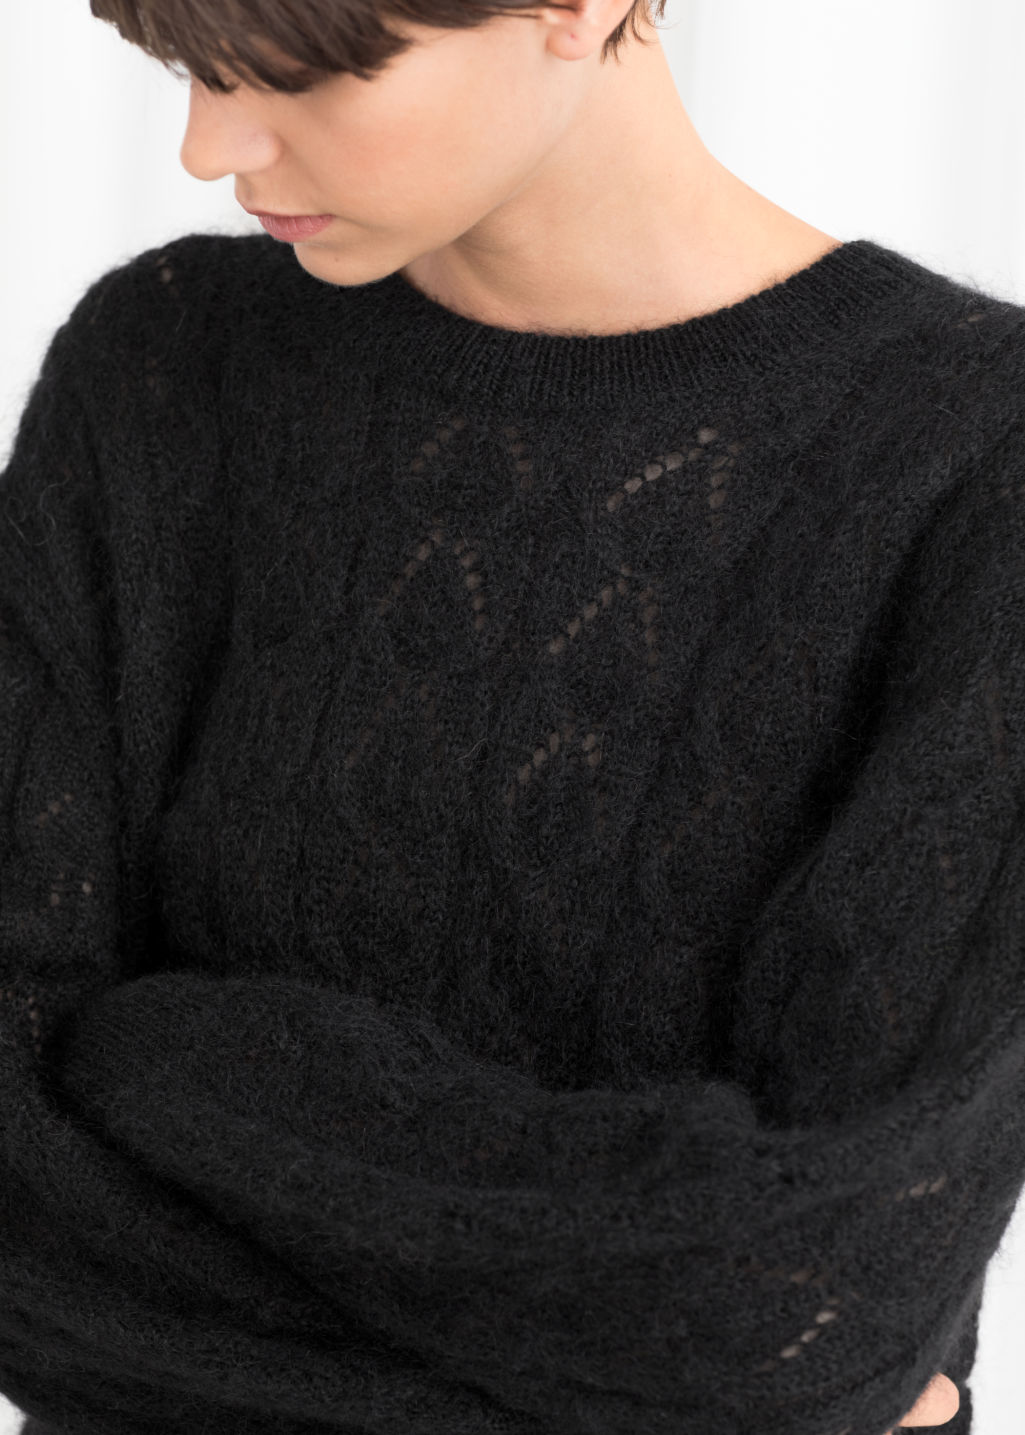 Sweatersamp; Oversized Knit Sweater Other Black Eyelet Stories 8w0knPOX